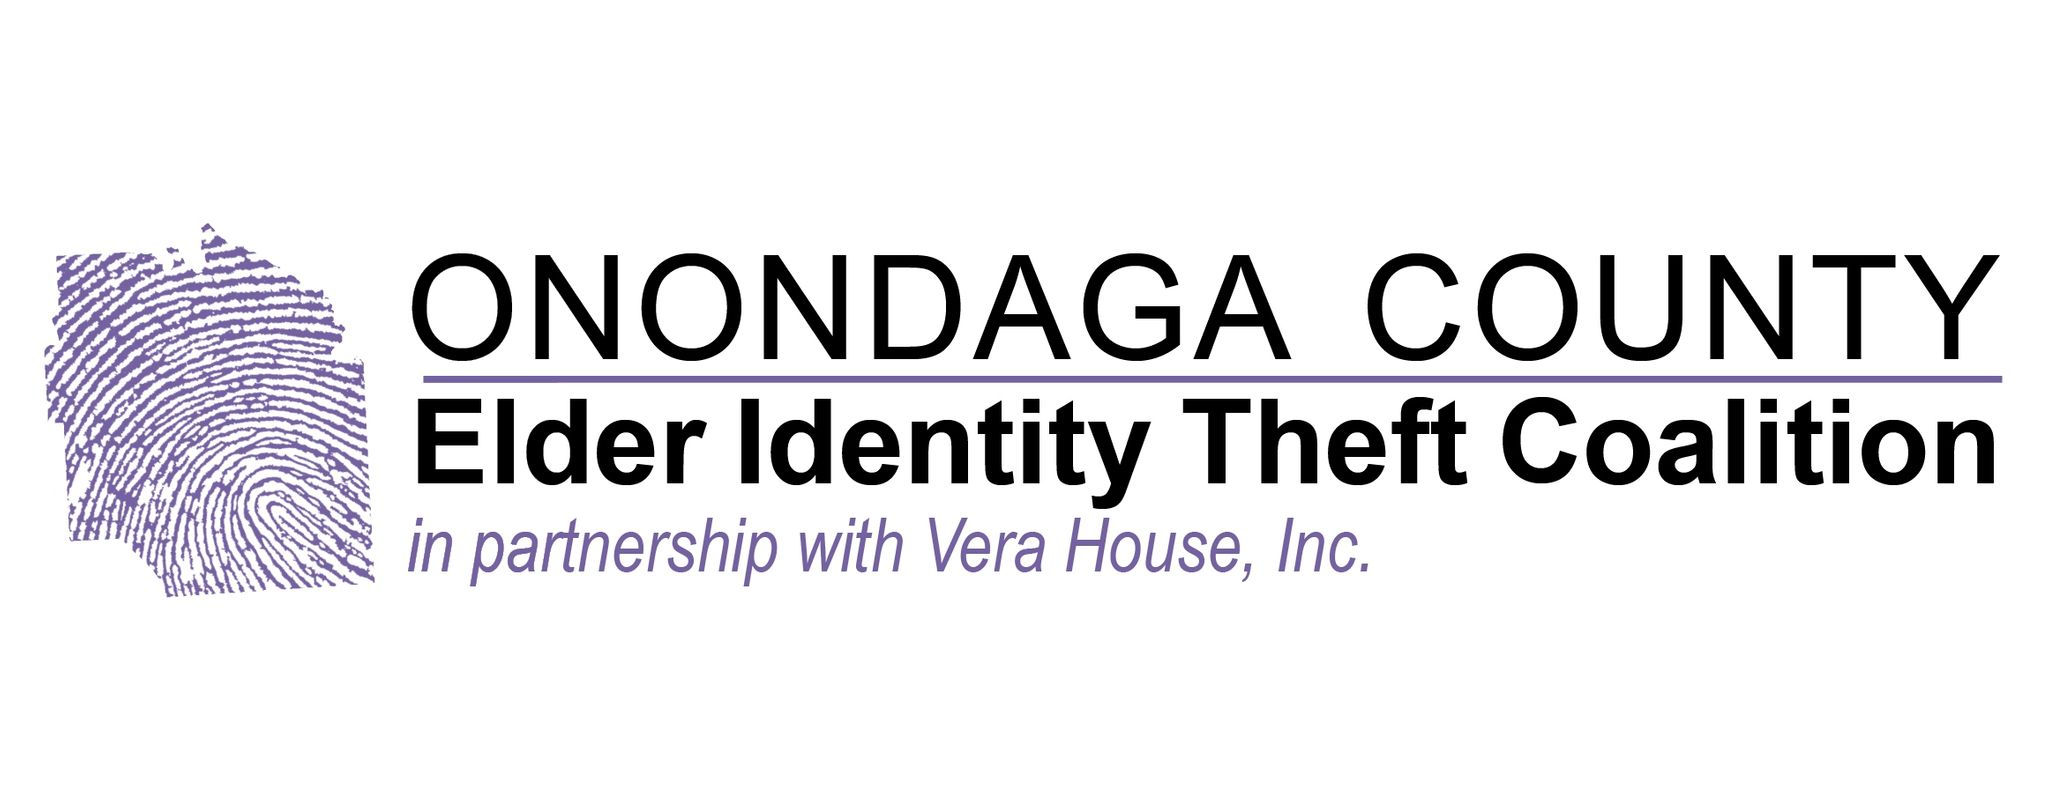 Onondaga County Elder Identity Theft Coalition Logo